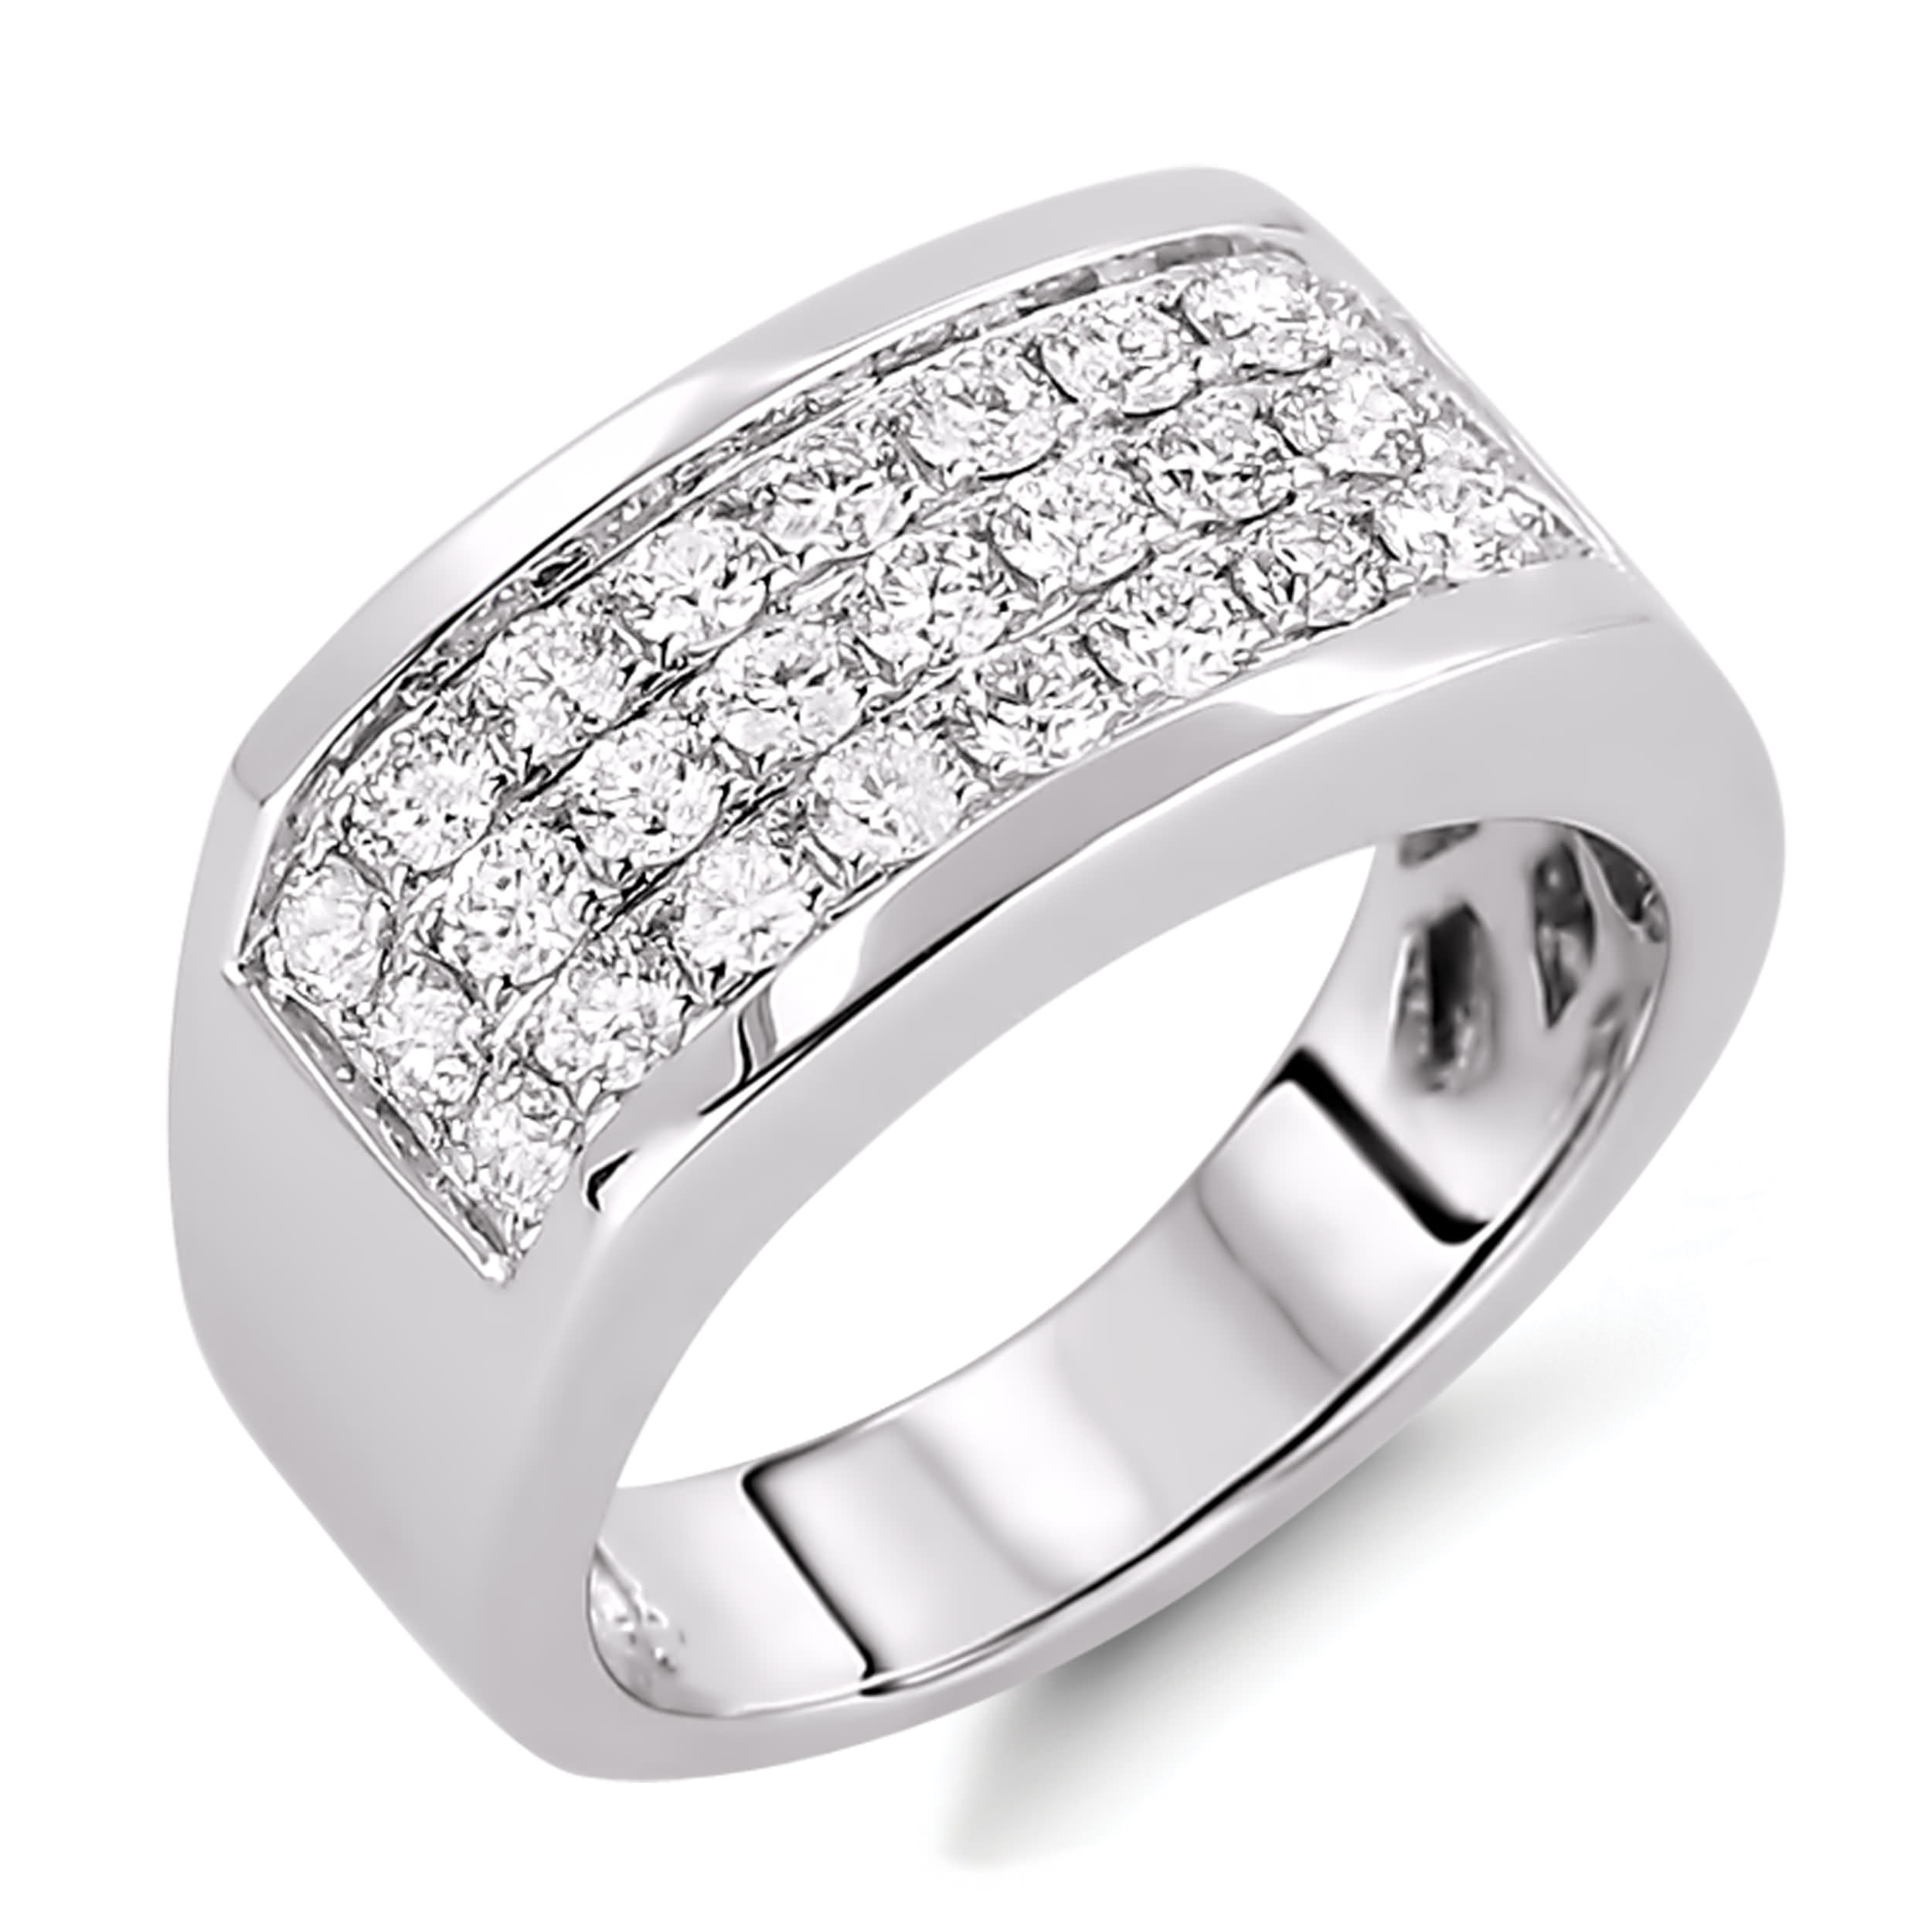 Diamond Anniversary Rings SGR654 (Rings)